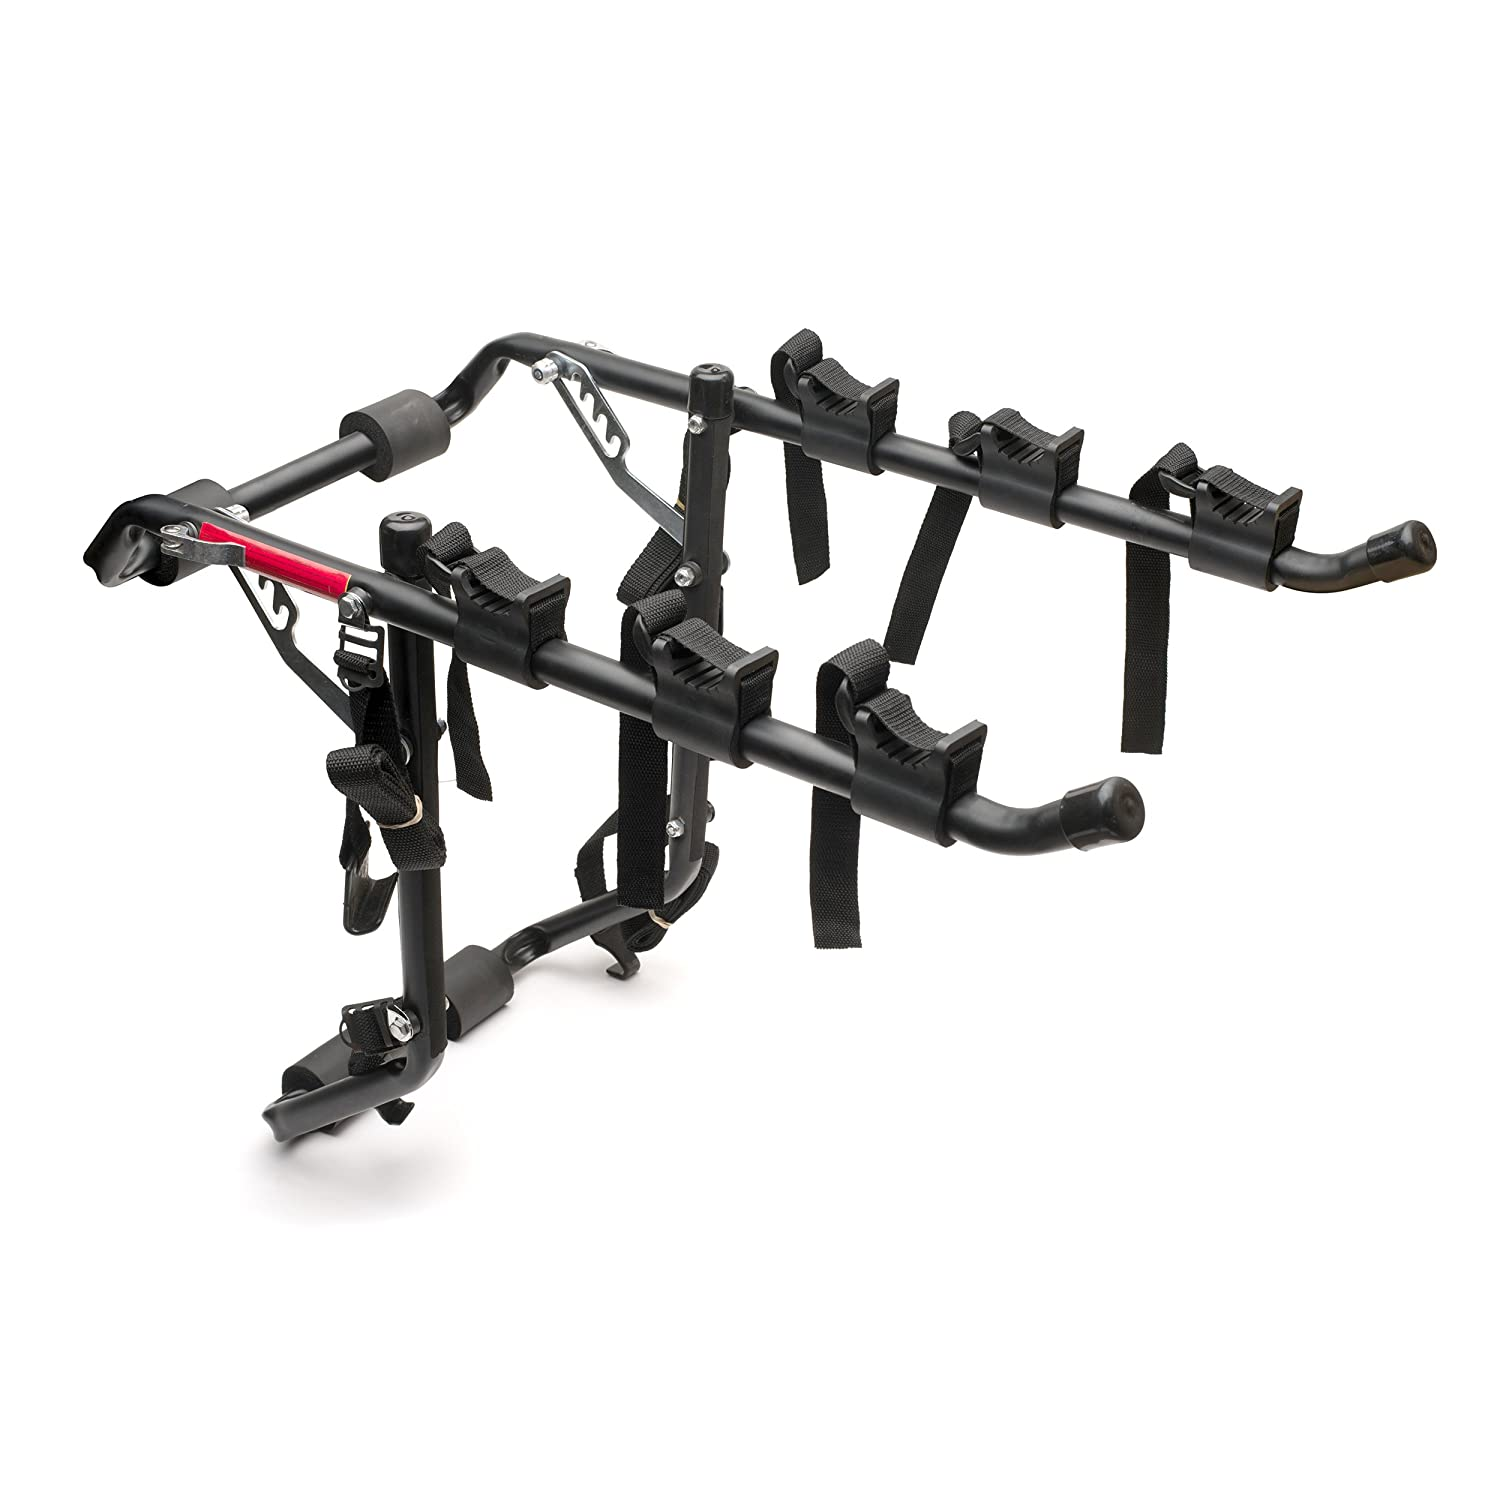 Vuelta Deluxe 3 Bike Trunk Carrier Black Cycle Force Group 953014060